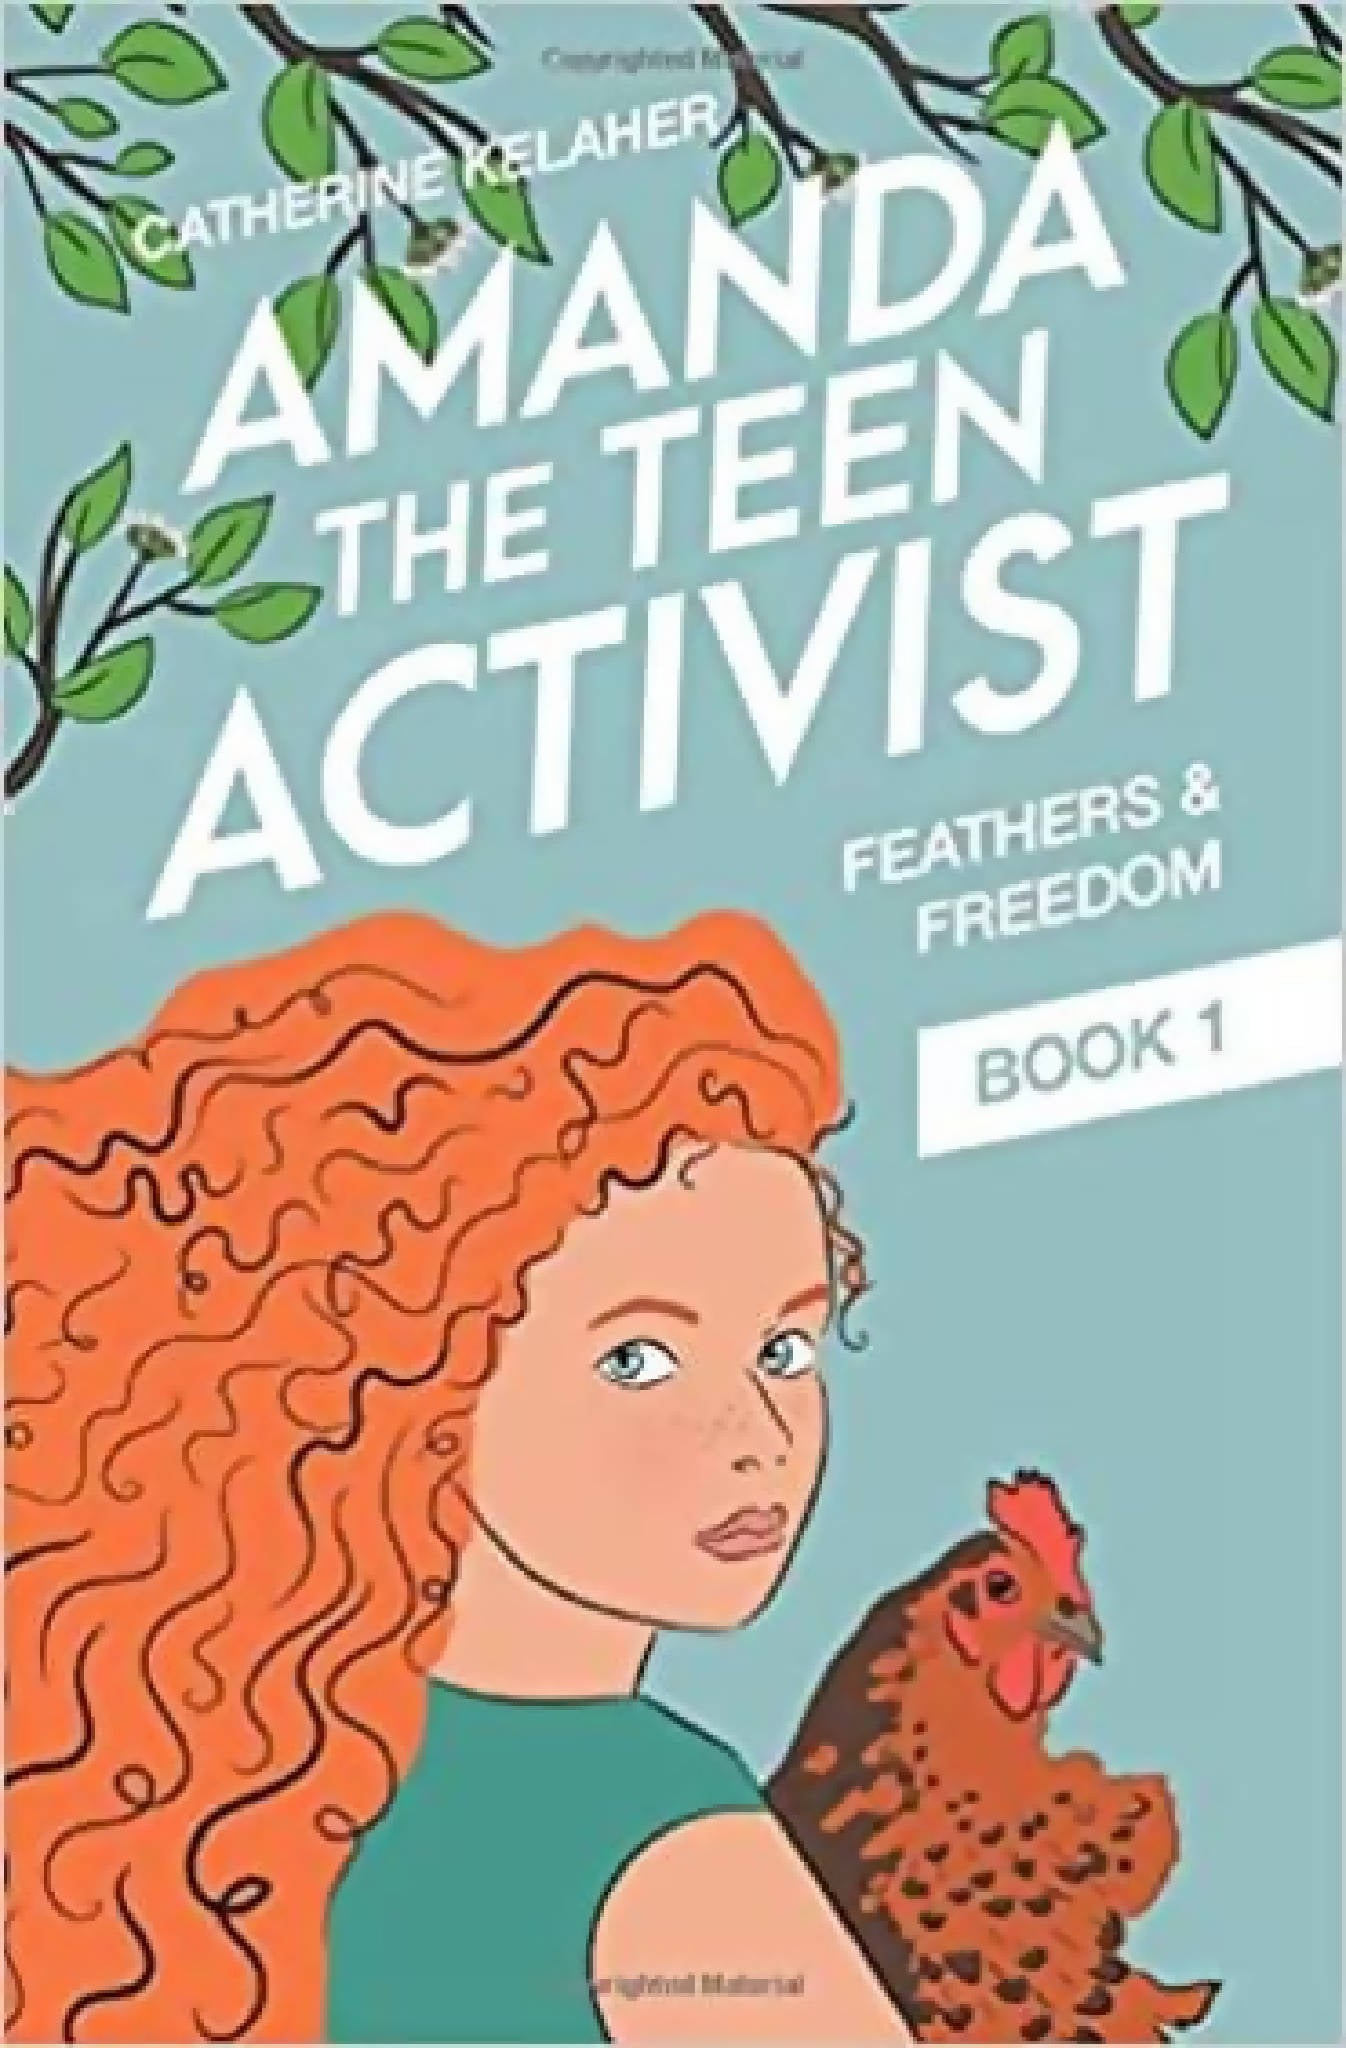 Amanda the Teen Activist by Catherine Kelaher